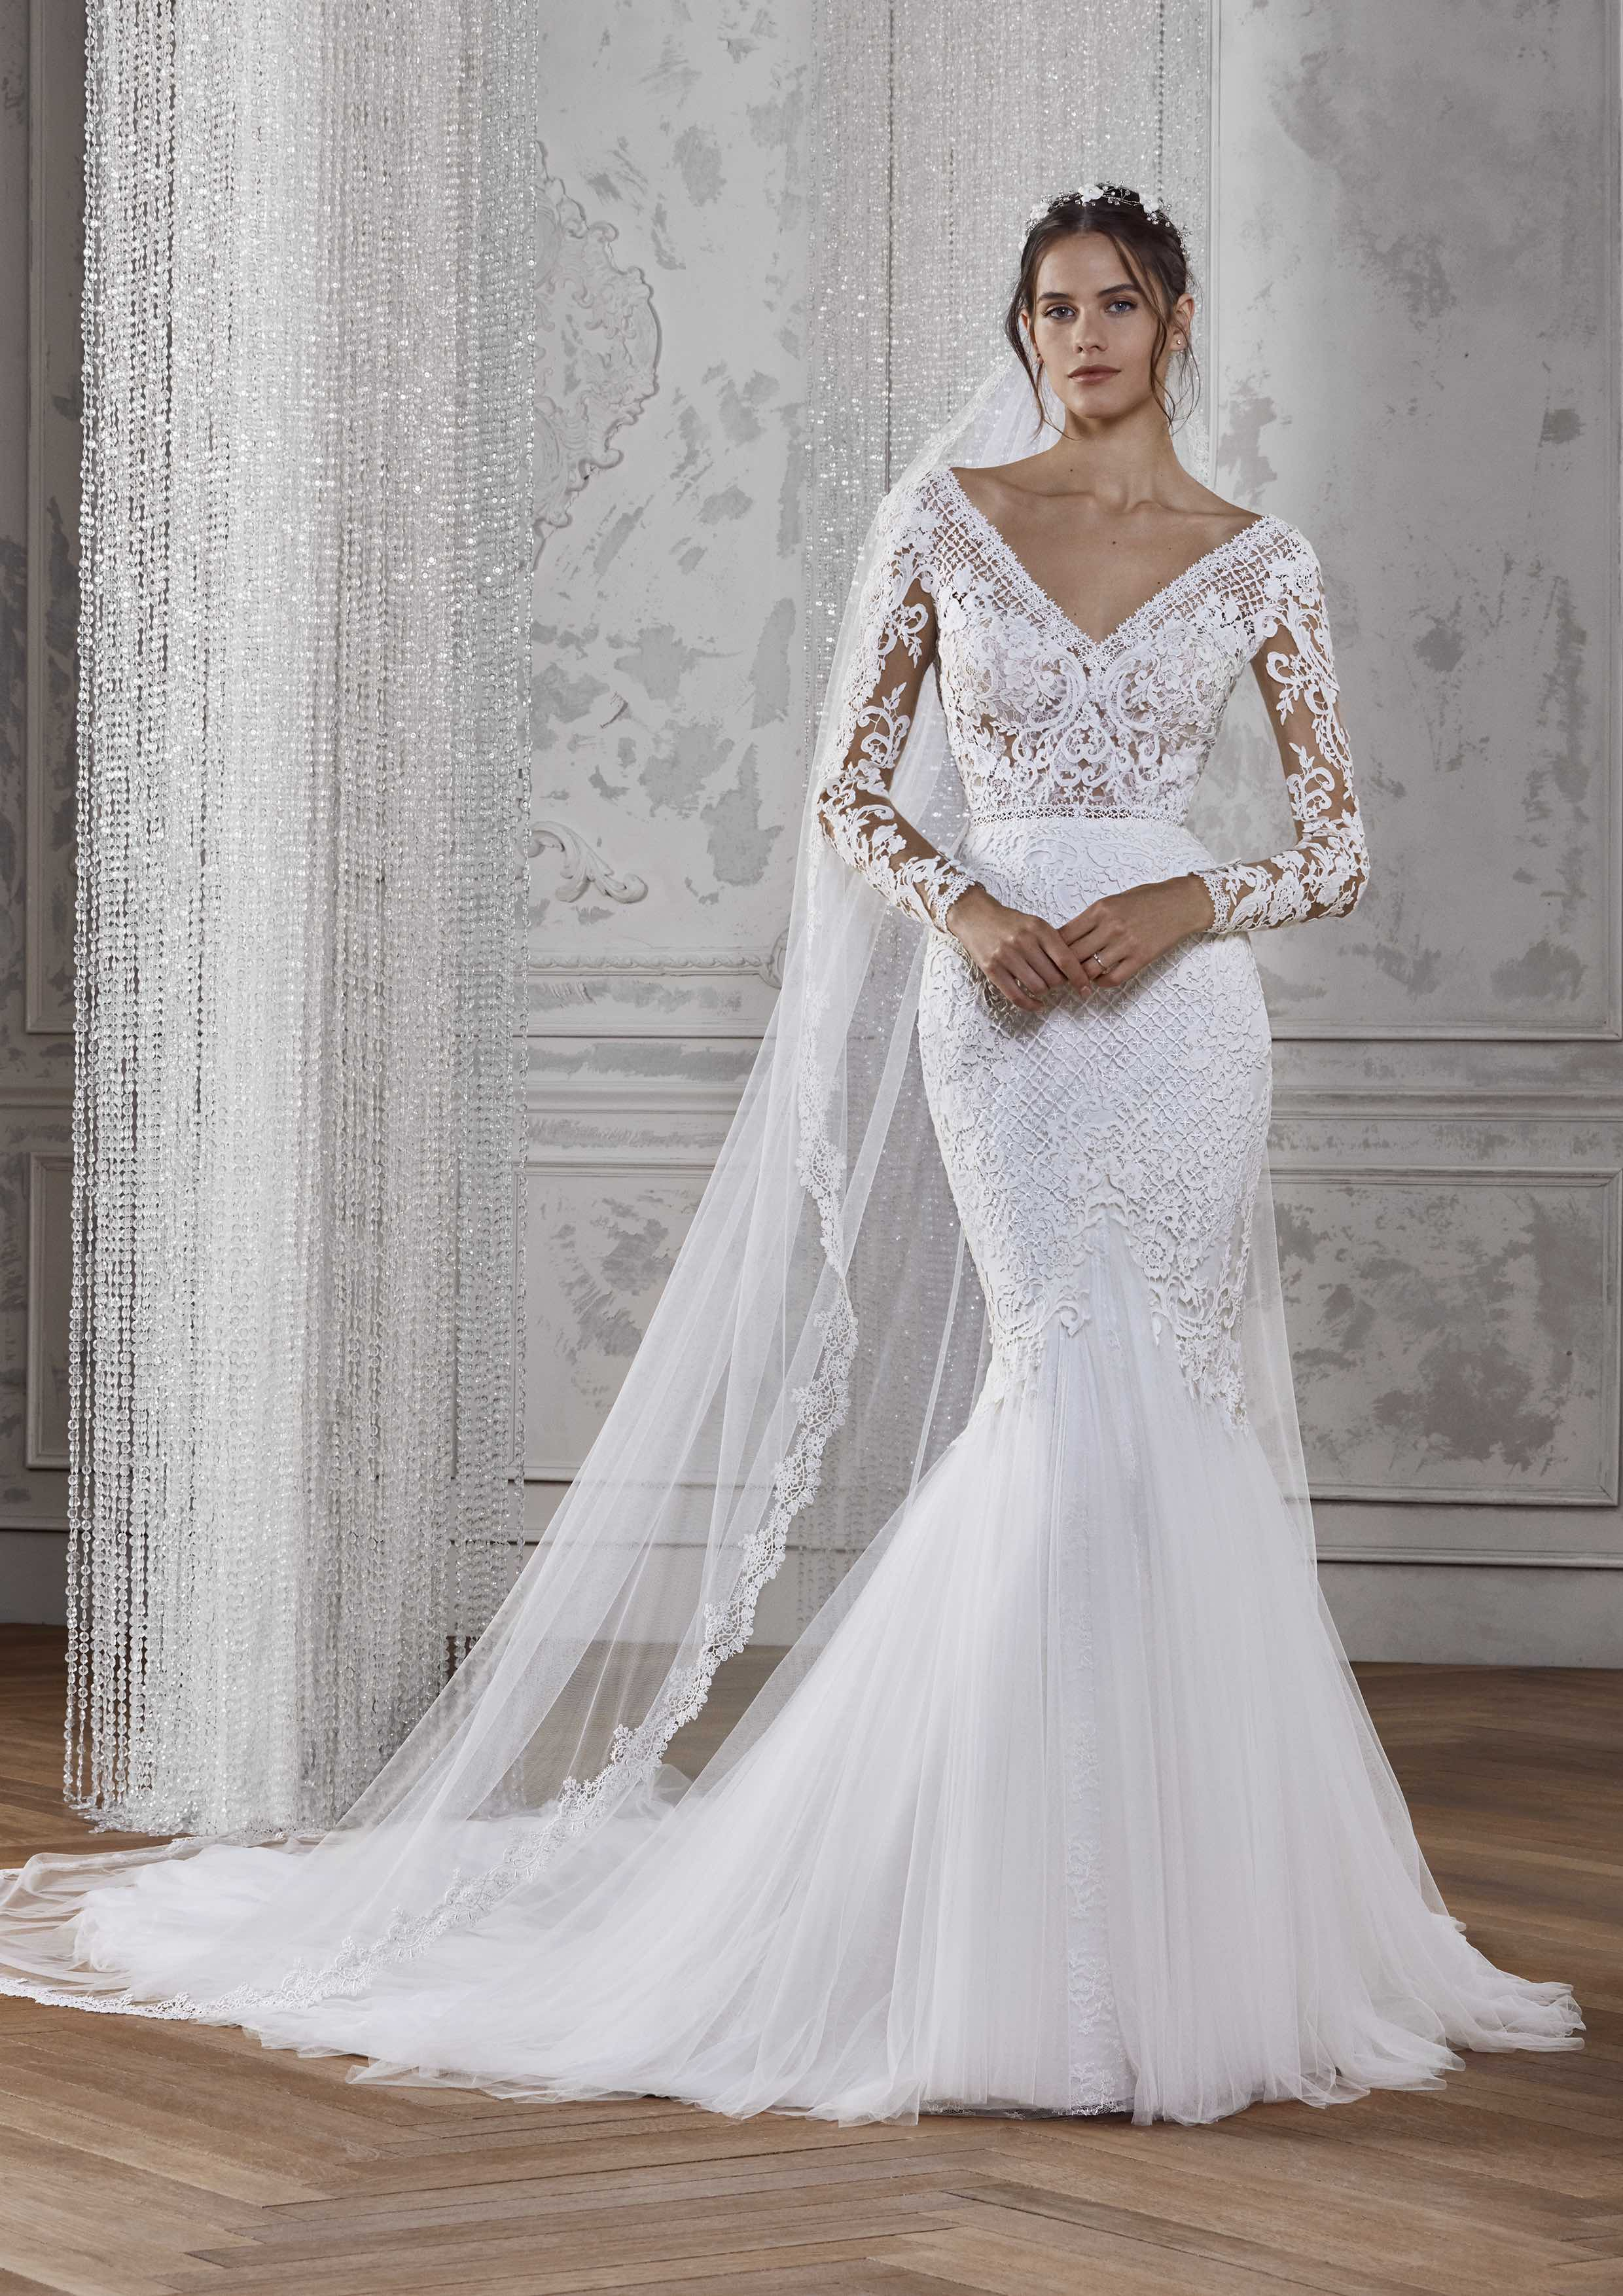 Wedding Dress Market Expand Their Businesses With New Investments By 2022